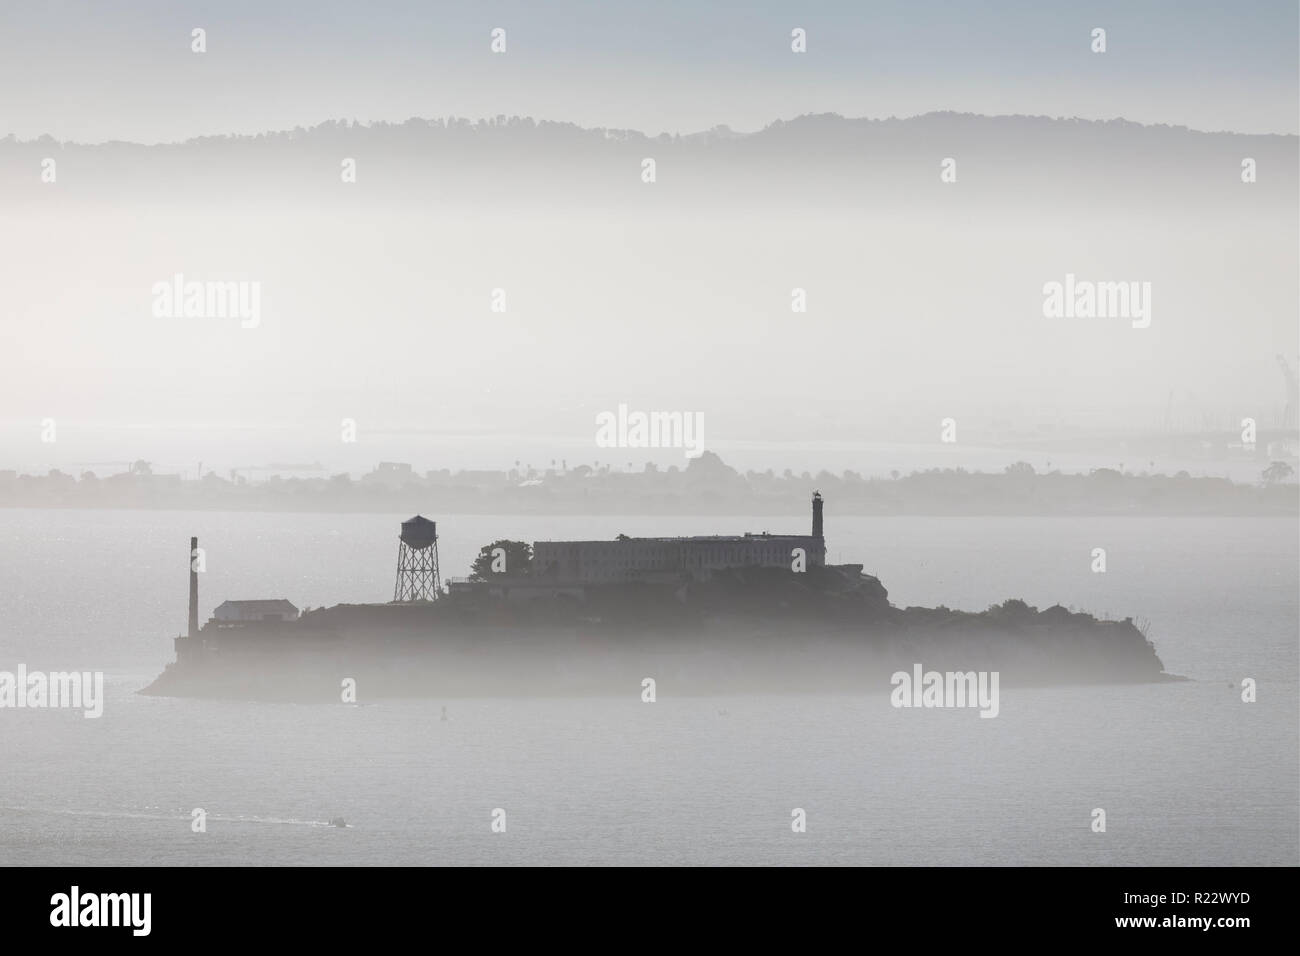 Alcatraz, in infamous prison of an island of the same name is viewed from afar in a foggy San Francisco Bay. - Stock Image